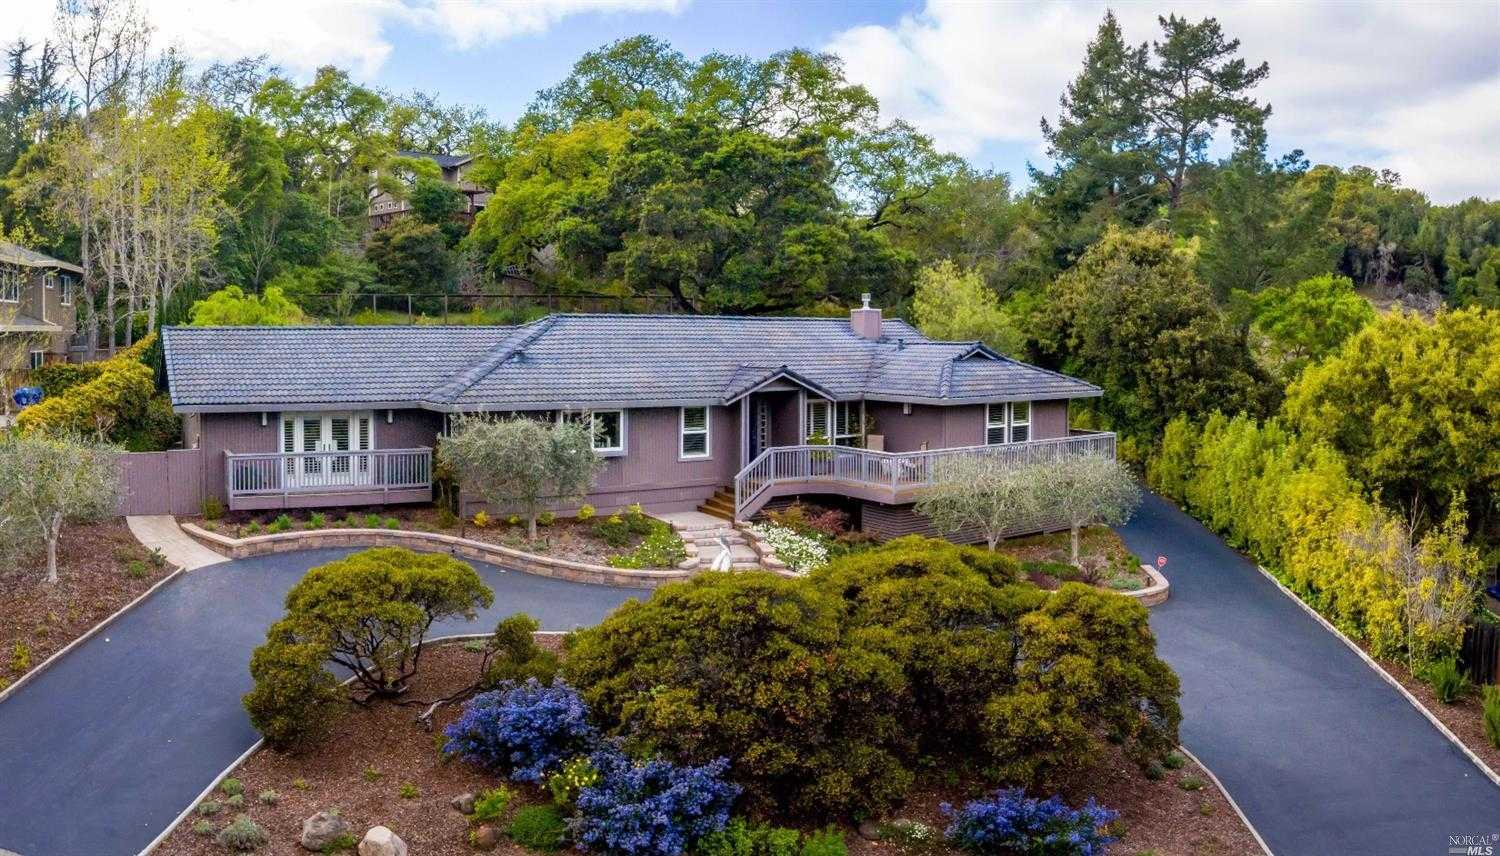 $1,300,000 - 3Br/3Ba -  for Sale in Napa